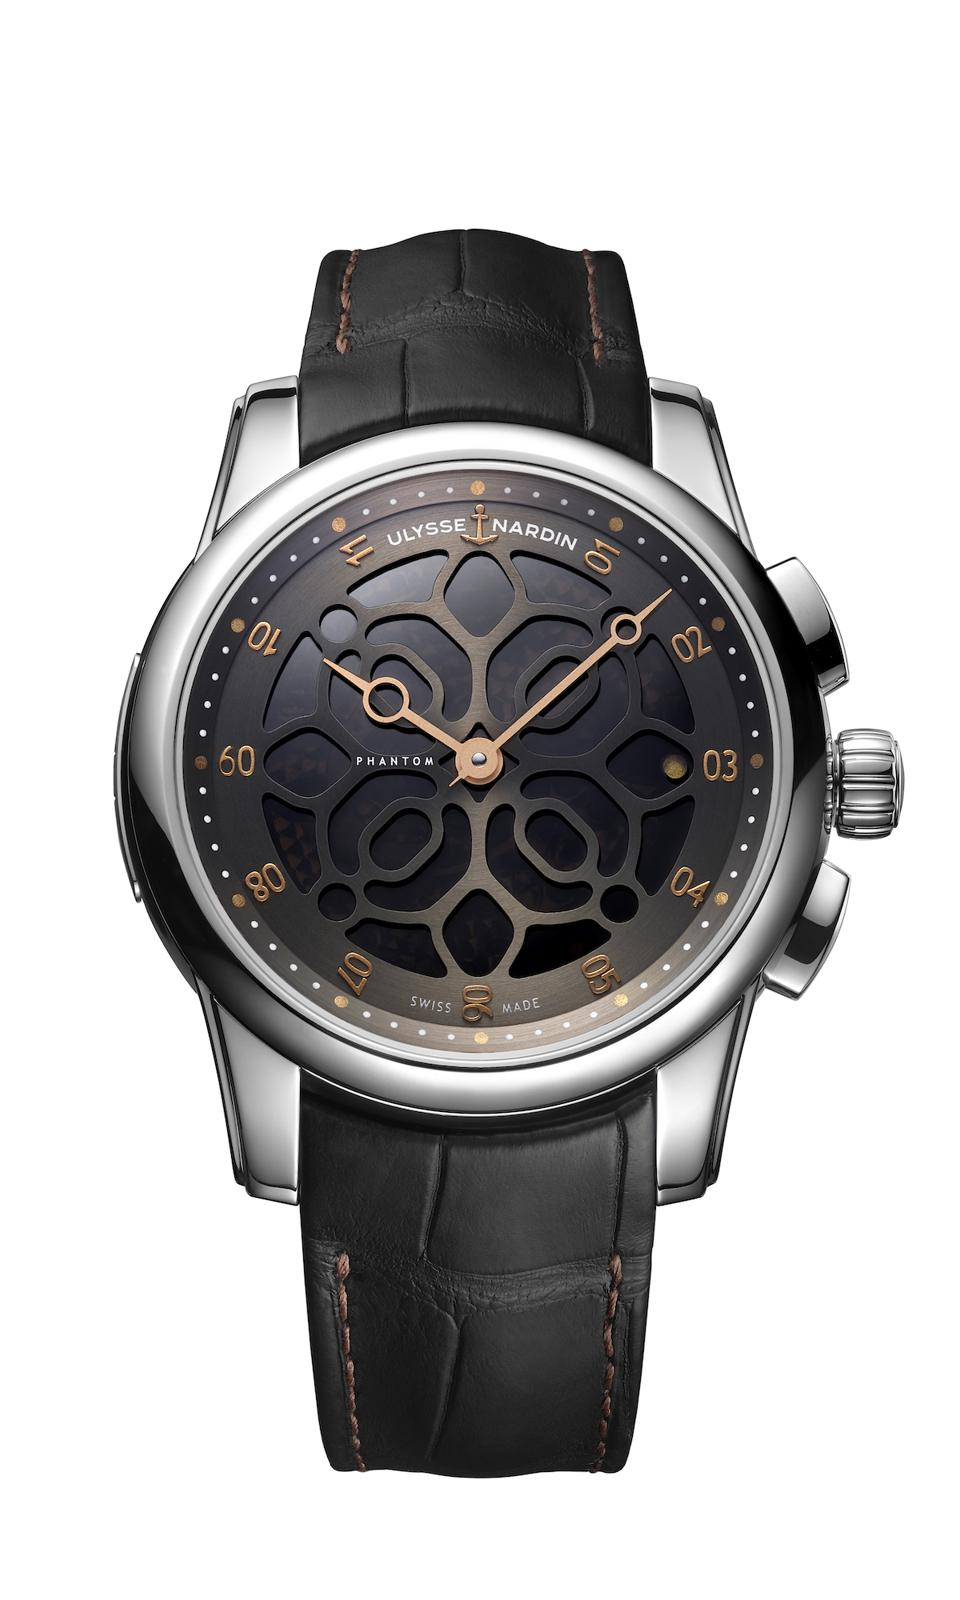 Ulysse Nardin Teams With Devialet Speaker Company For New Hourstriker Phantom Watch